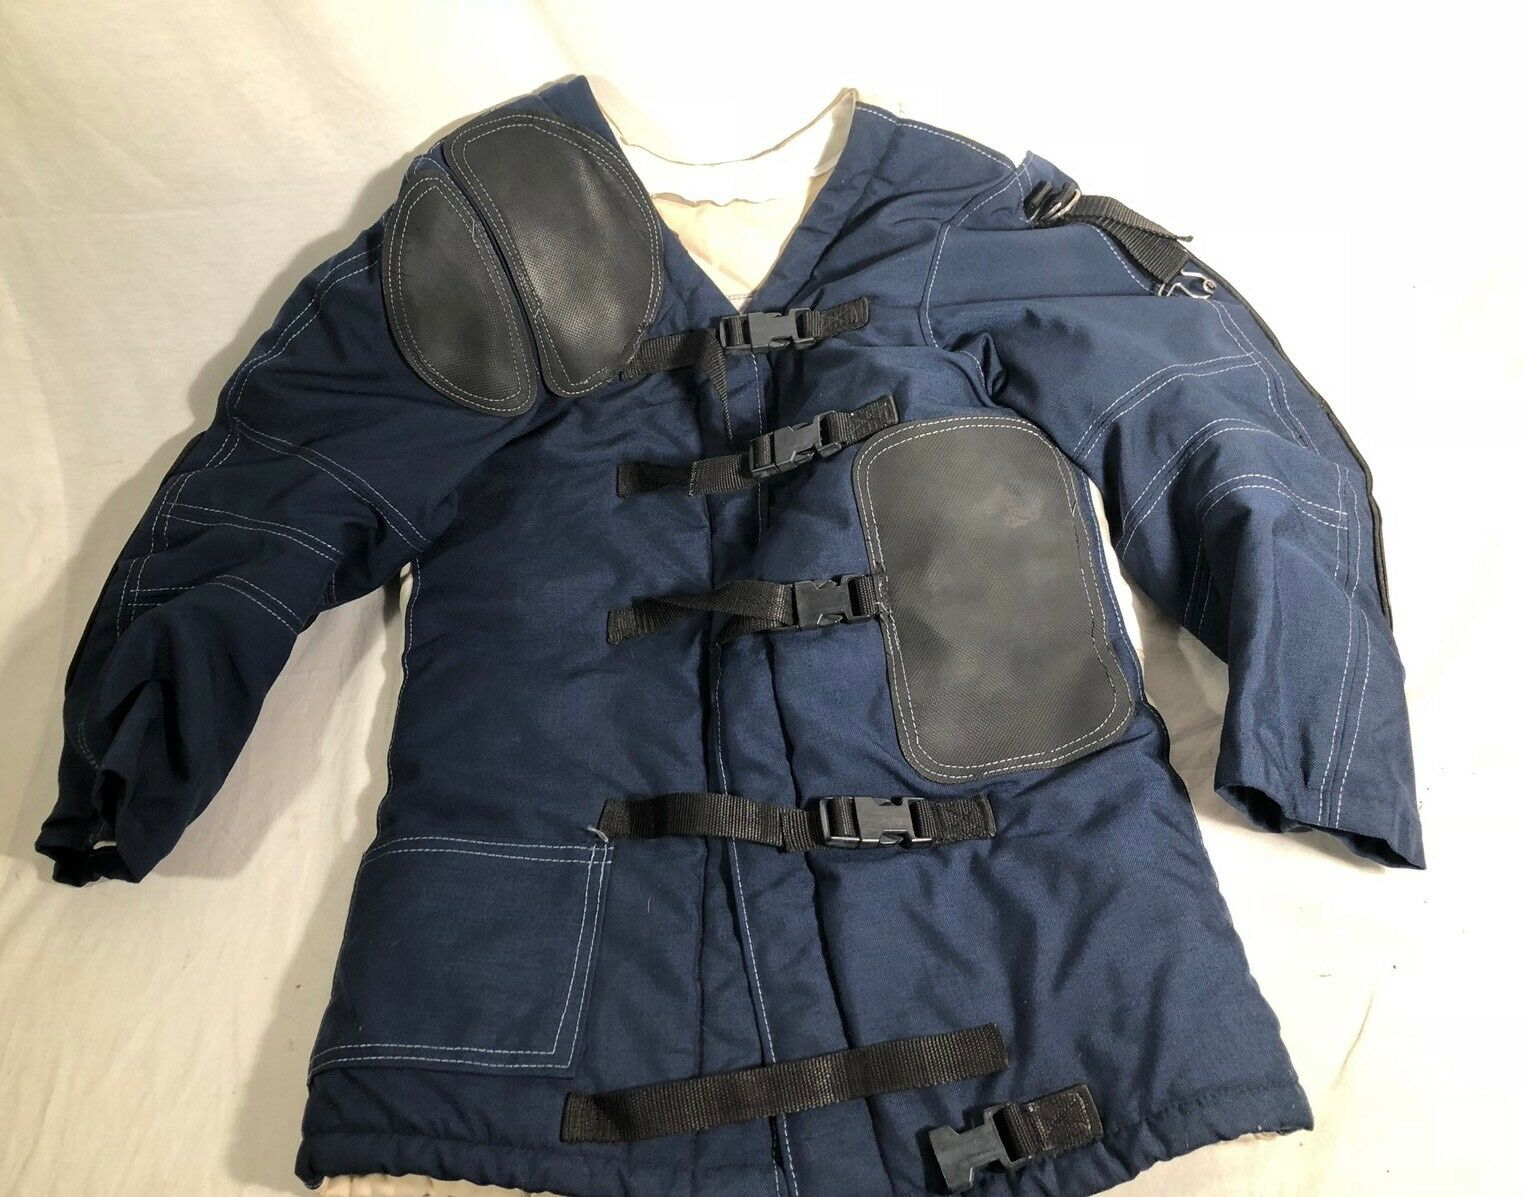 K9 Police Training Body Protector Padded Suit Size 40